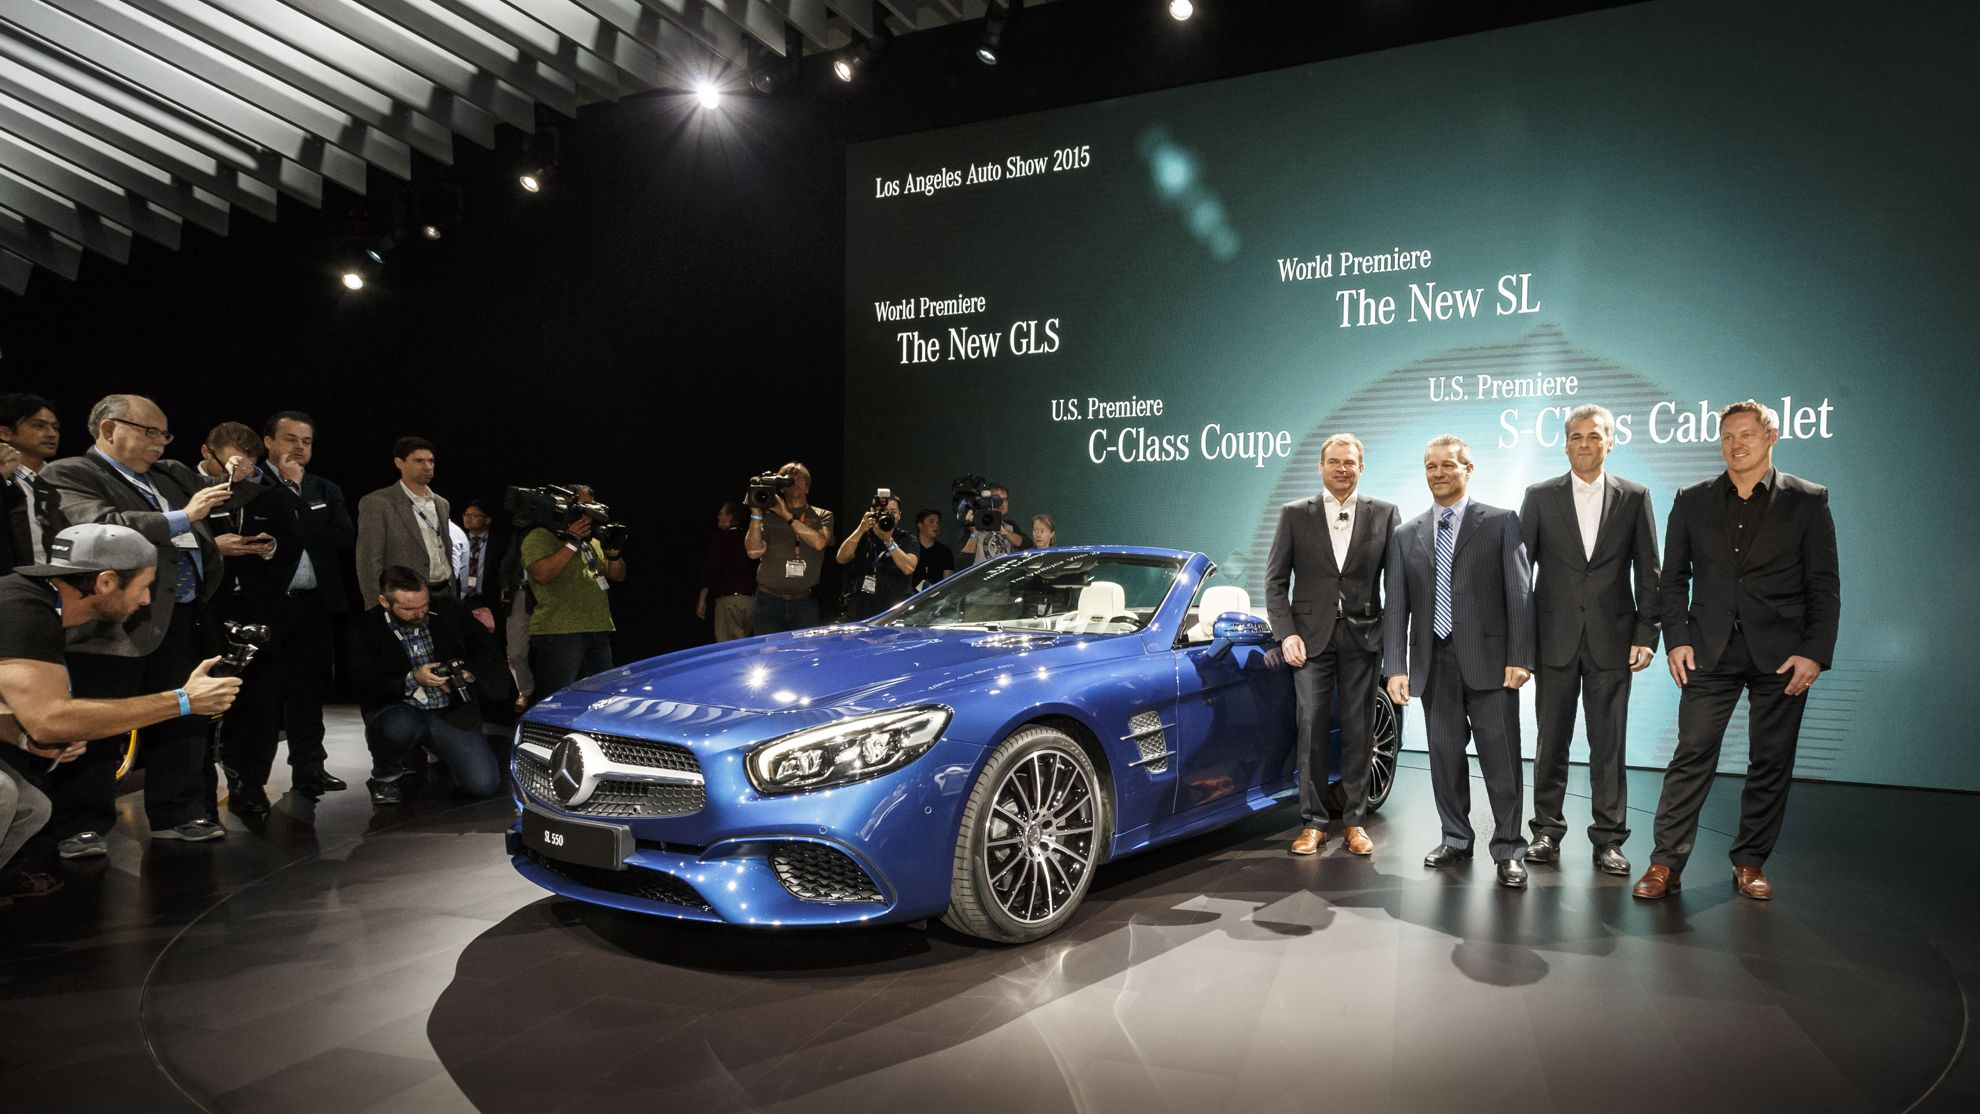 Mercedes Benz Los Angeles Auto Show 2015